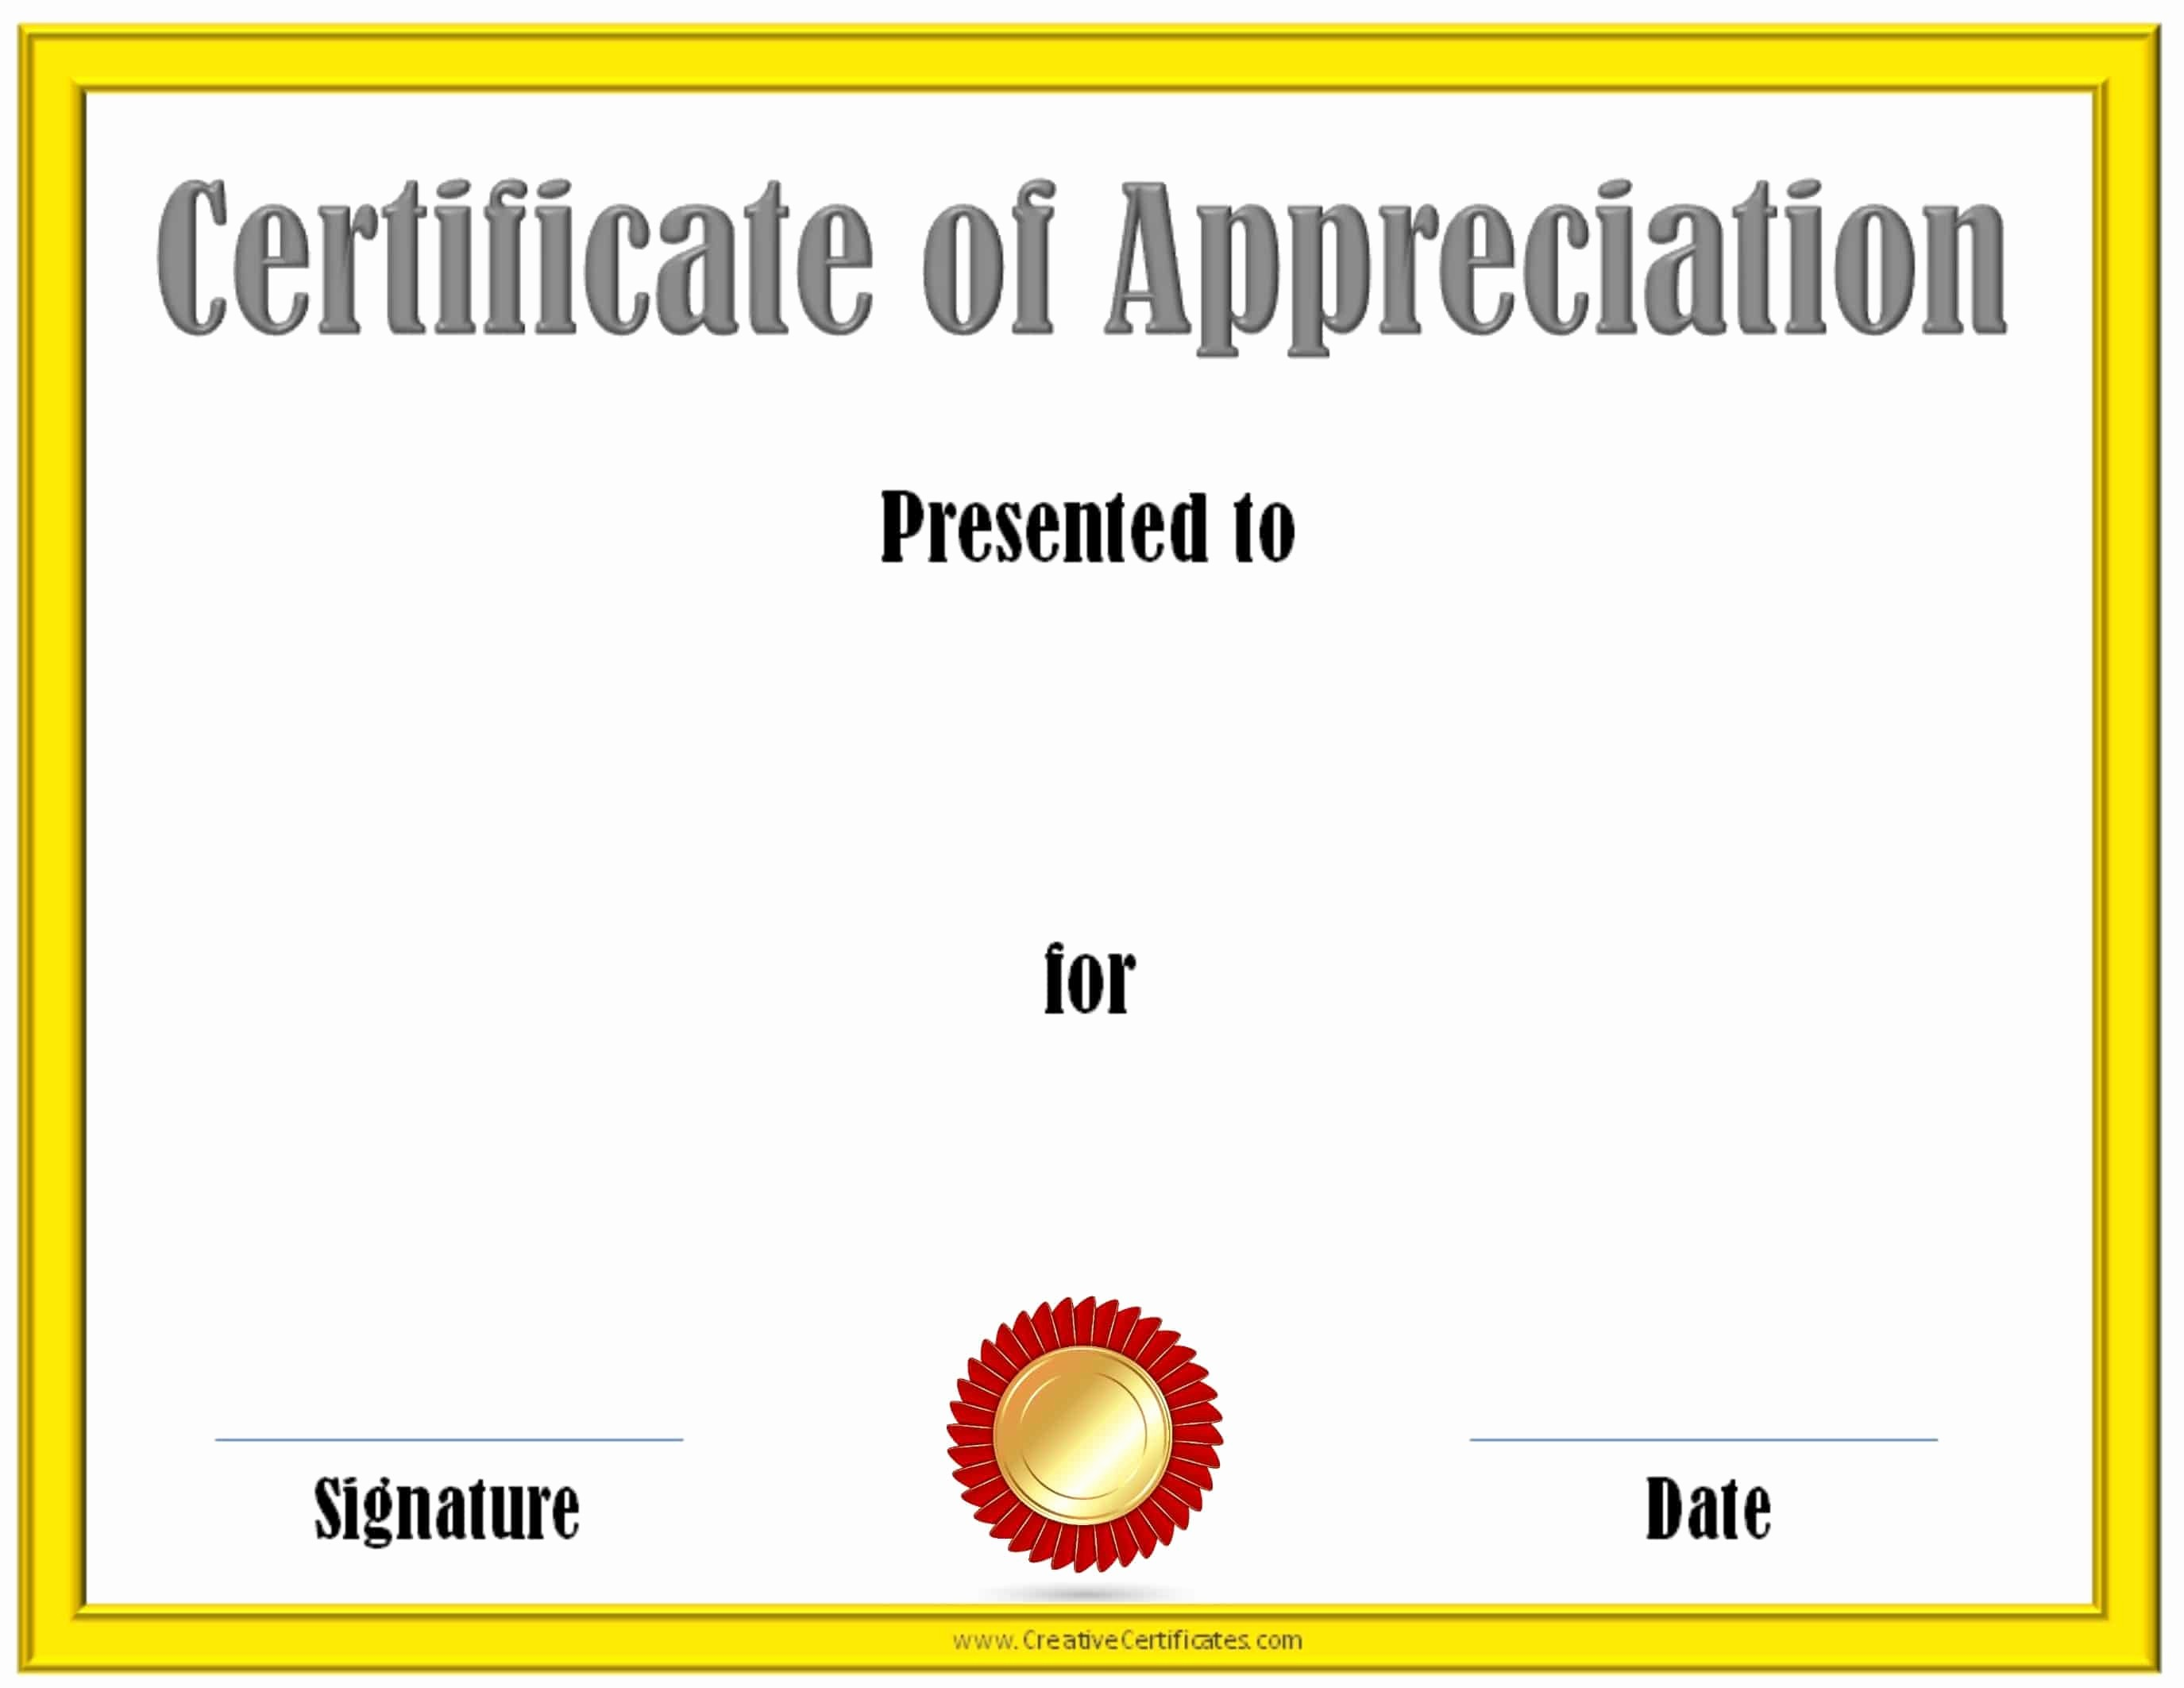 Printable Certificate Of Appreciation Template Fresh Free Editable Certificate Of Appreciation